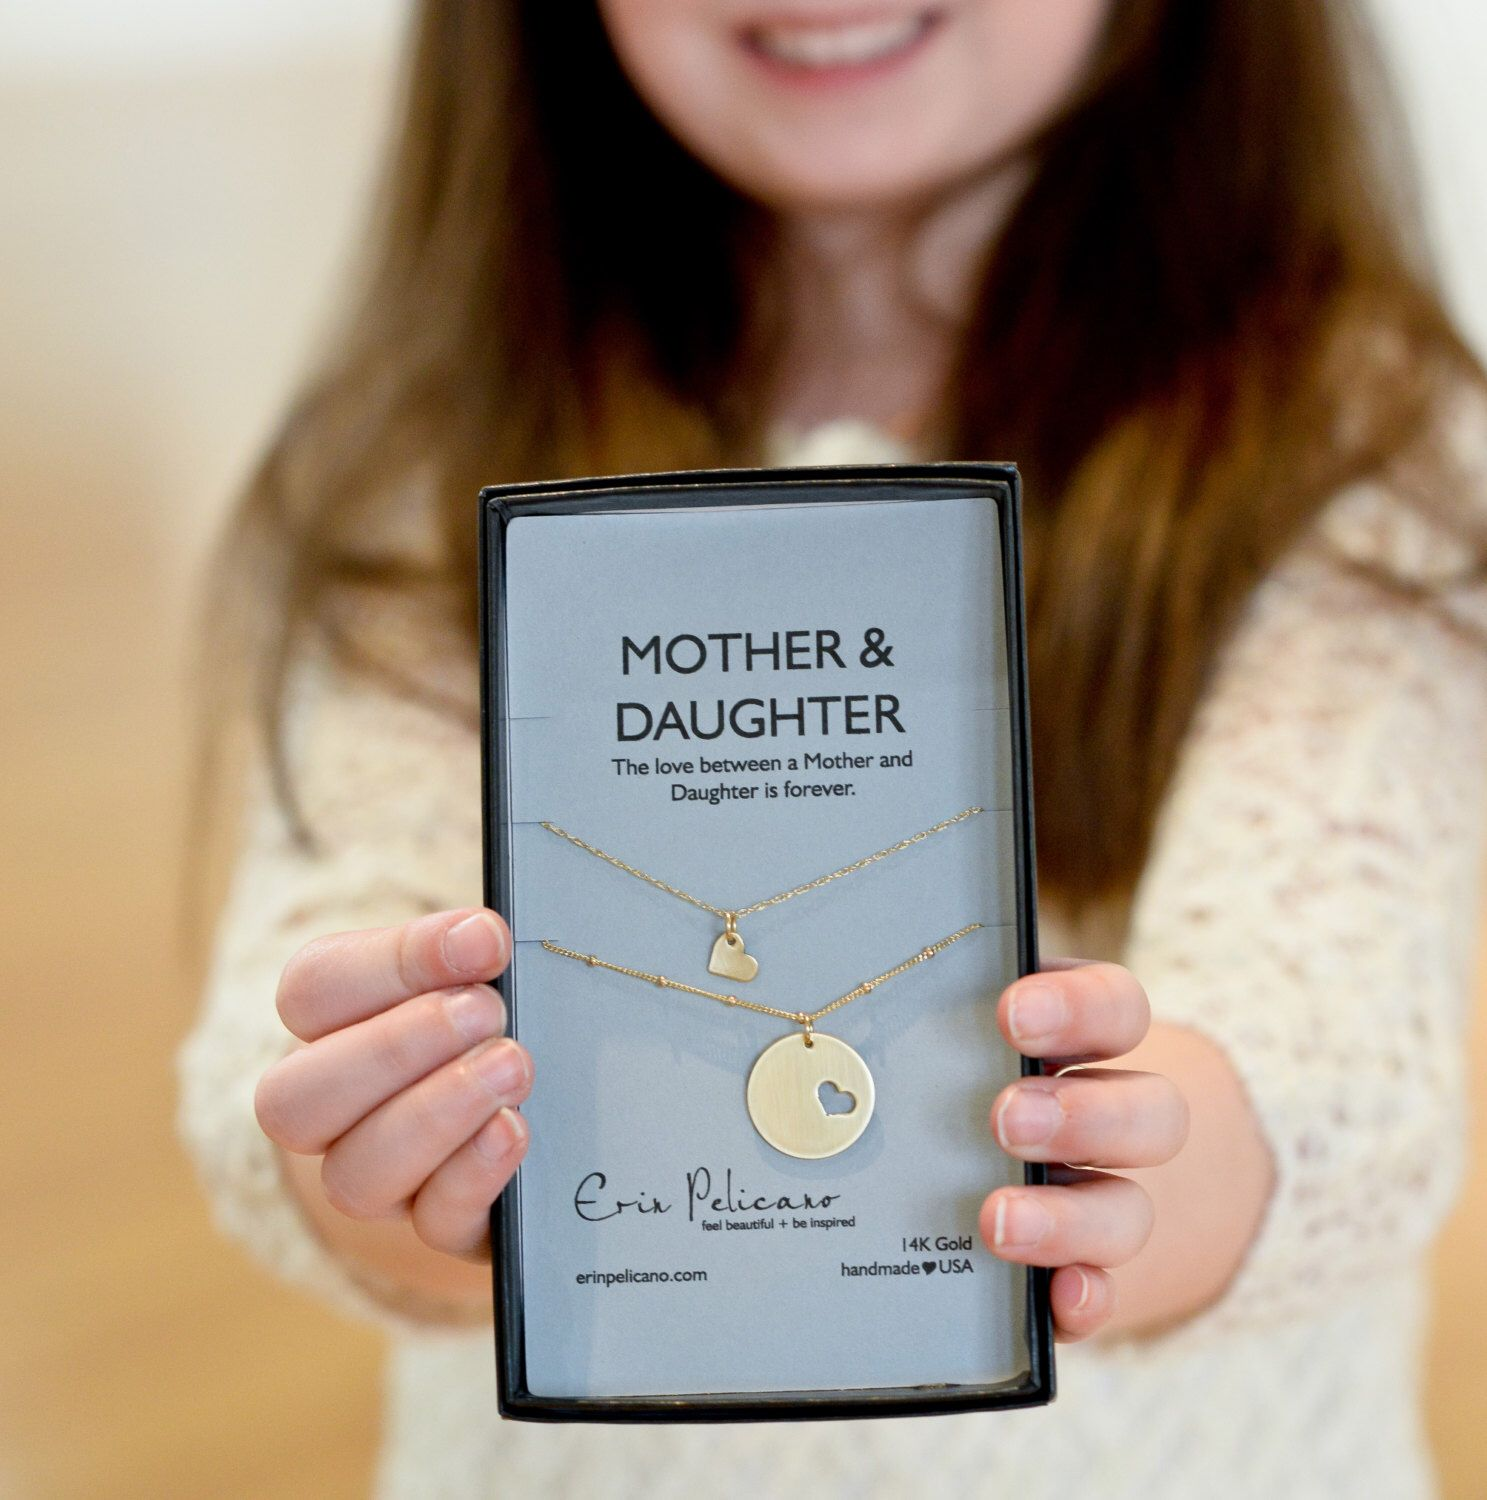 Mom Daughter Jewelry Two of a Kind Mother Daughter Necklace Set. Gold Jewelry. Necklace Gift for Mom. Inspirational Jewelry. Gift for Her